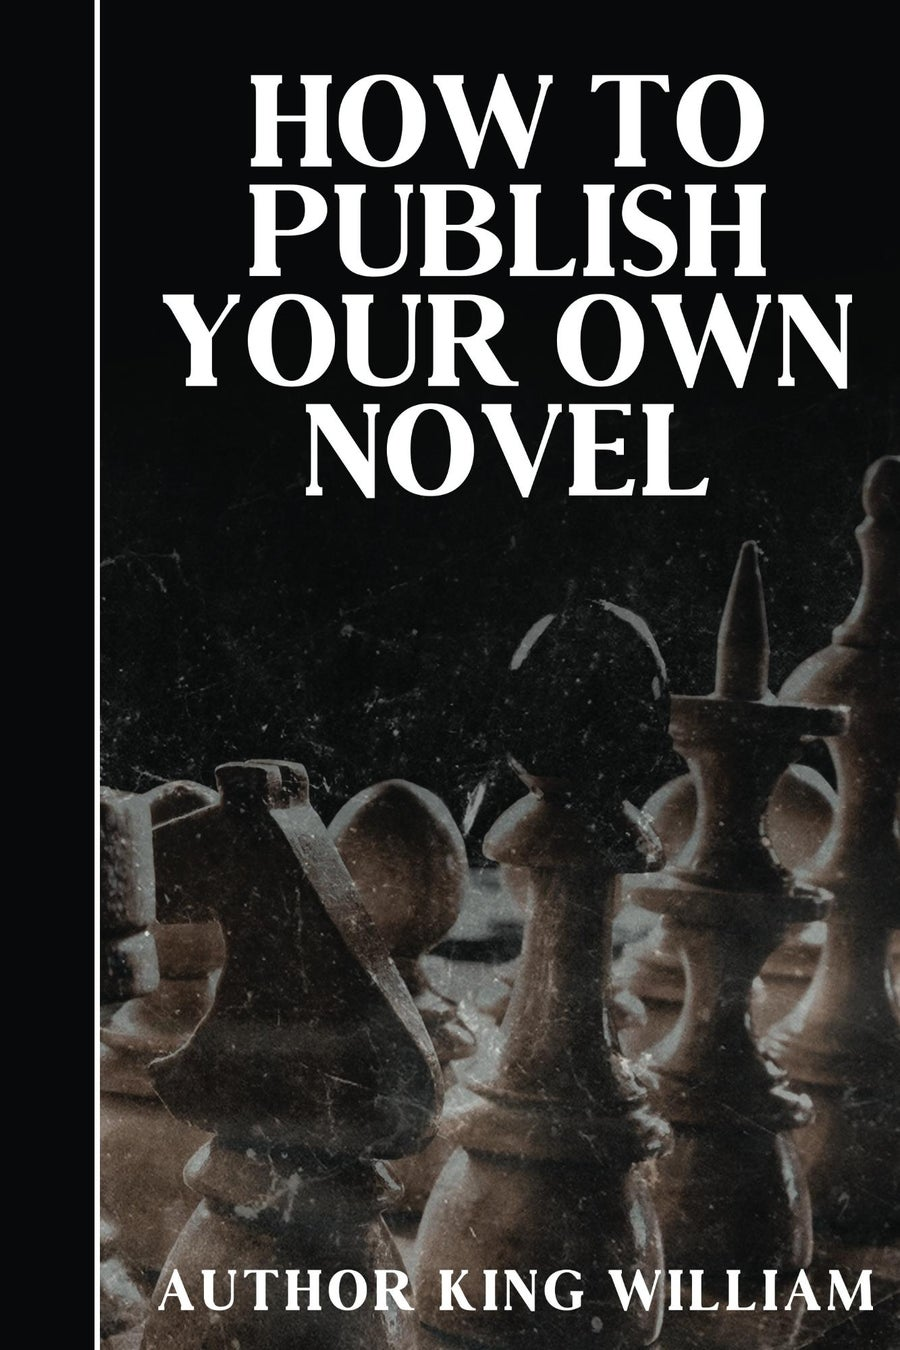 Image of How to Publish Your Own Novel